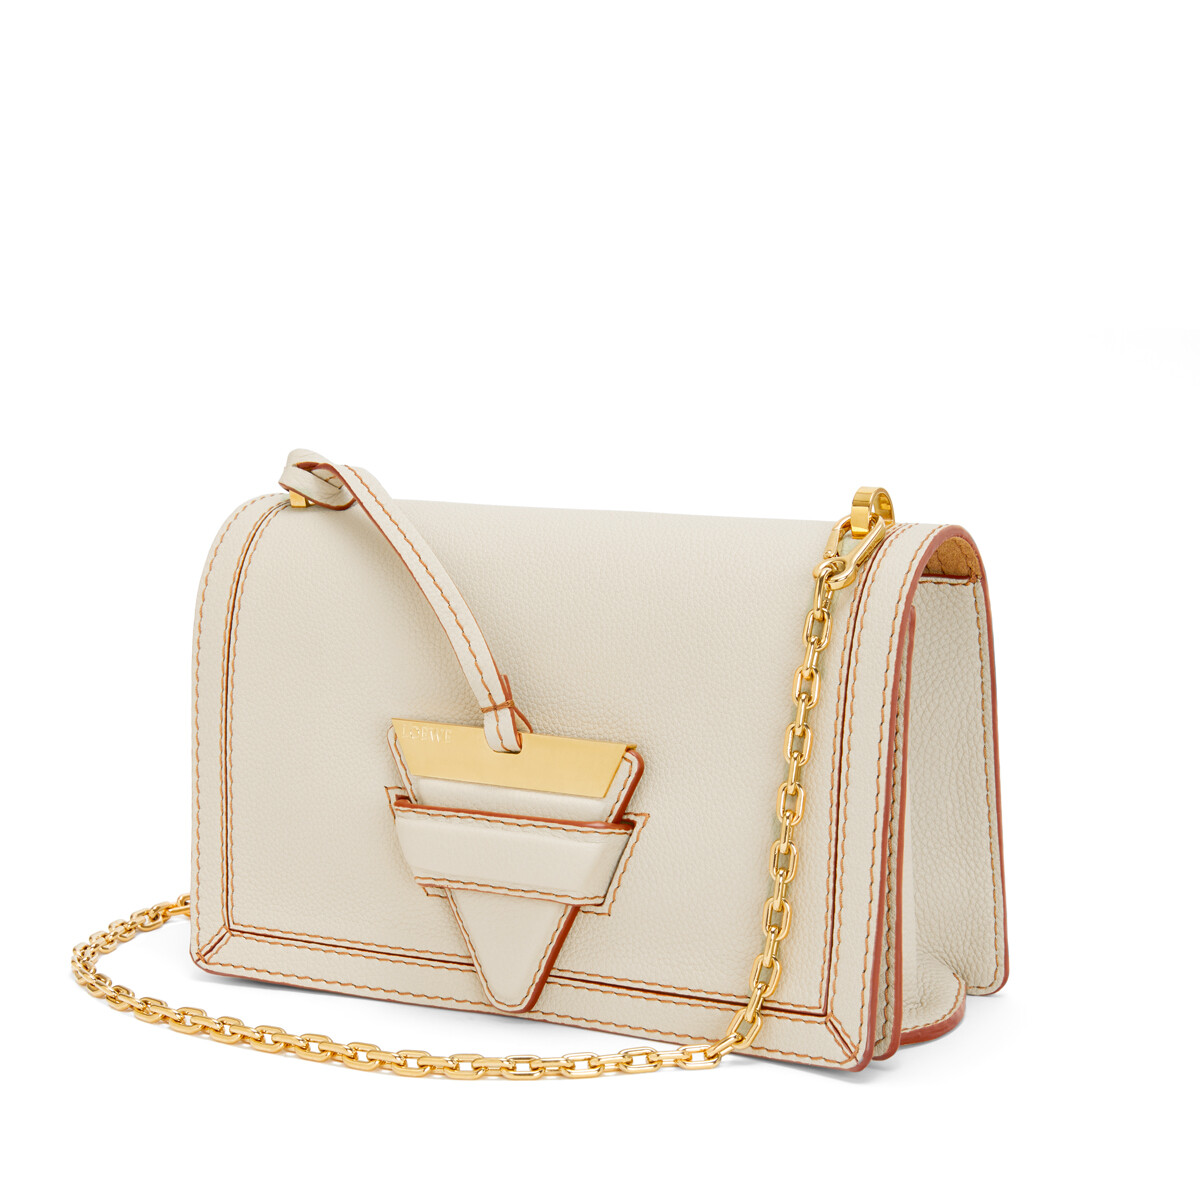 LOEWE Barcelona Soft Bag Light Oat front